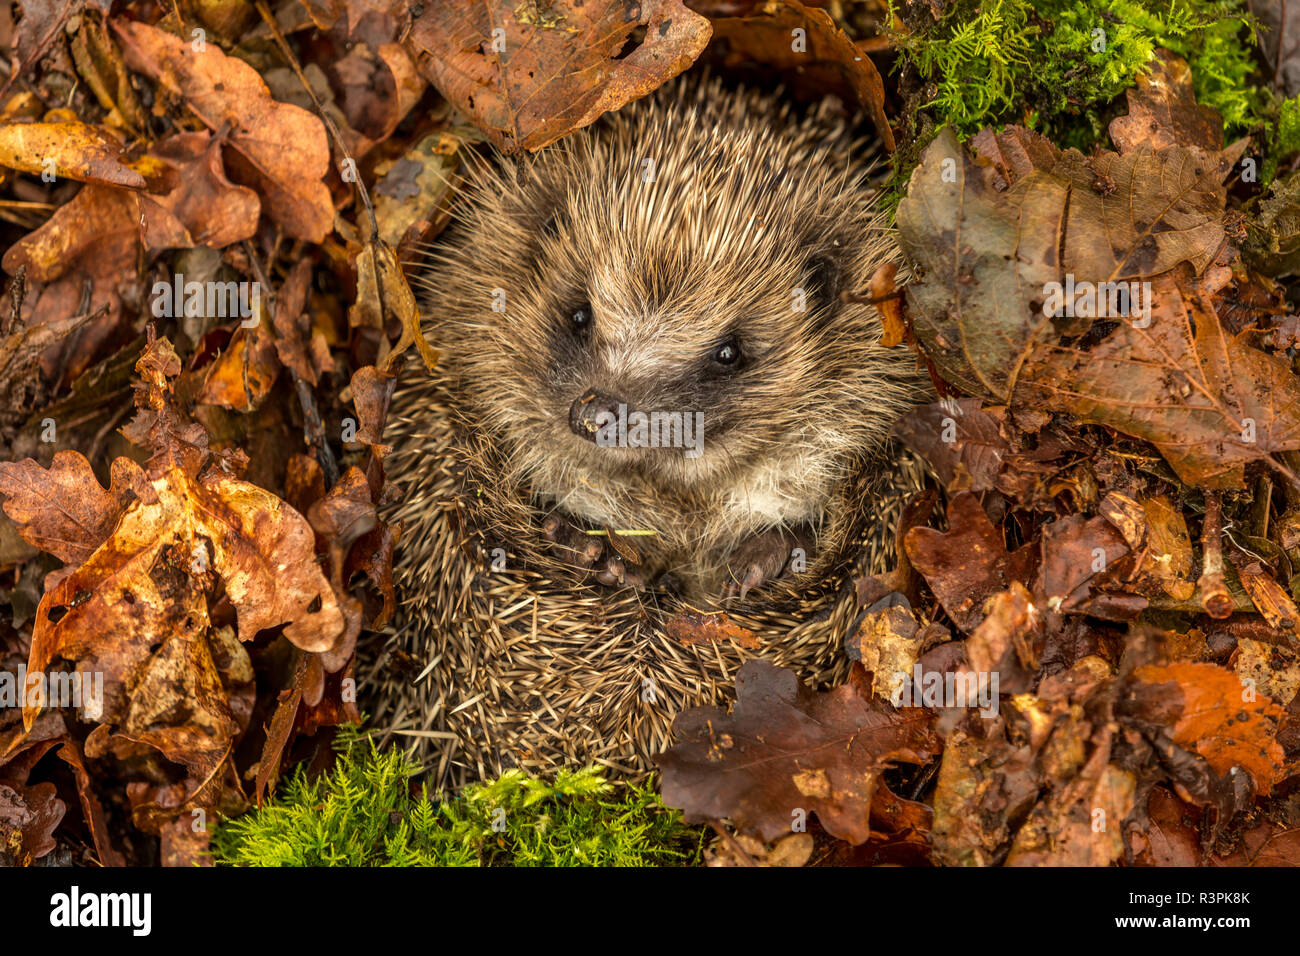 Hedgehog, Erinaceus europaeus, Wild, native hedgehog, curled into a ball and preparing for hibernation in golden Autumn leaves and green moss. - Stock Image